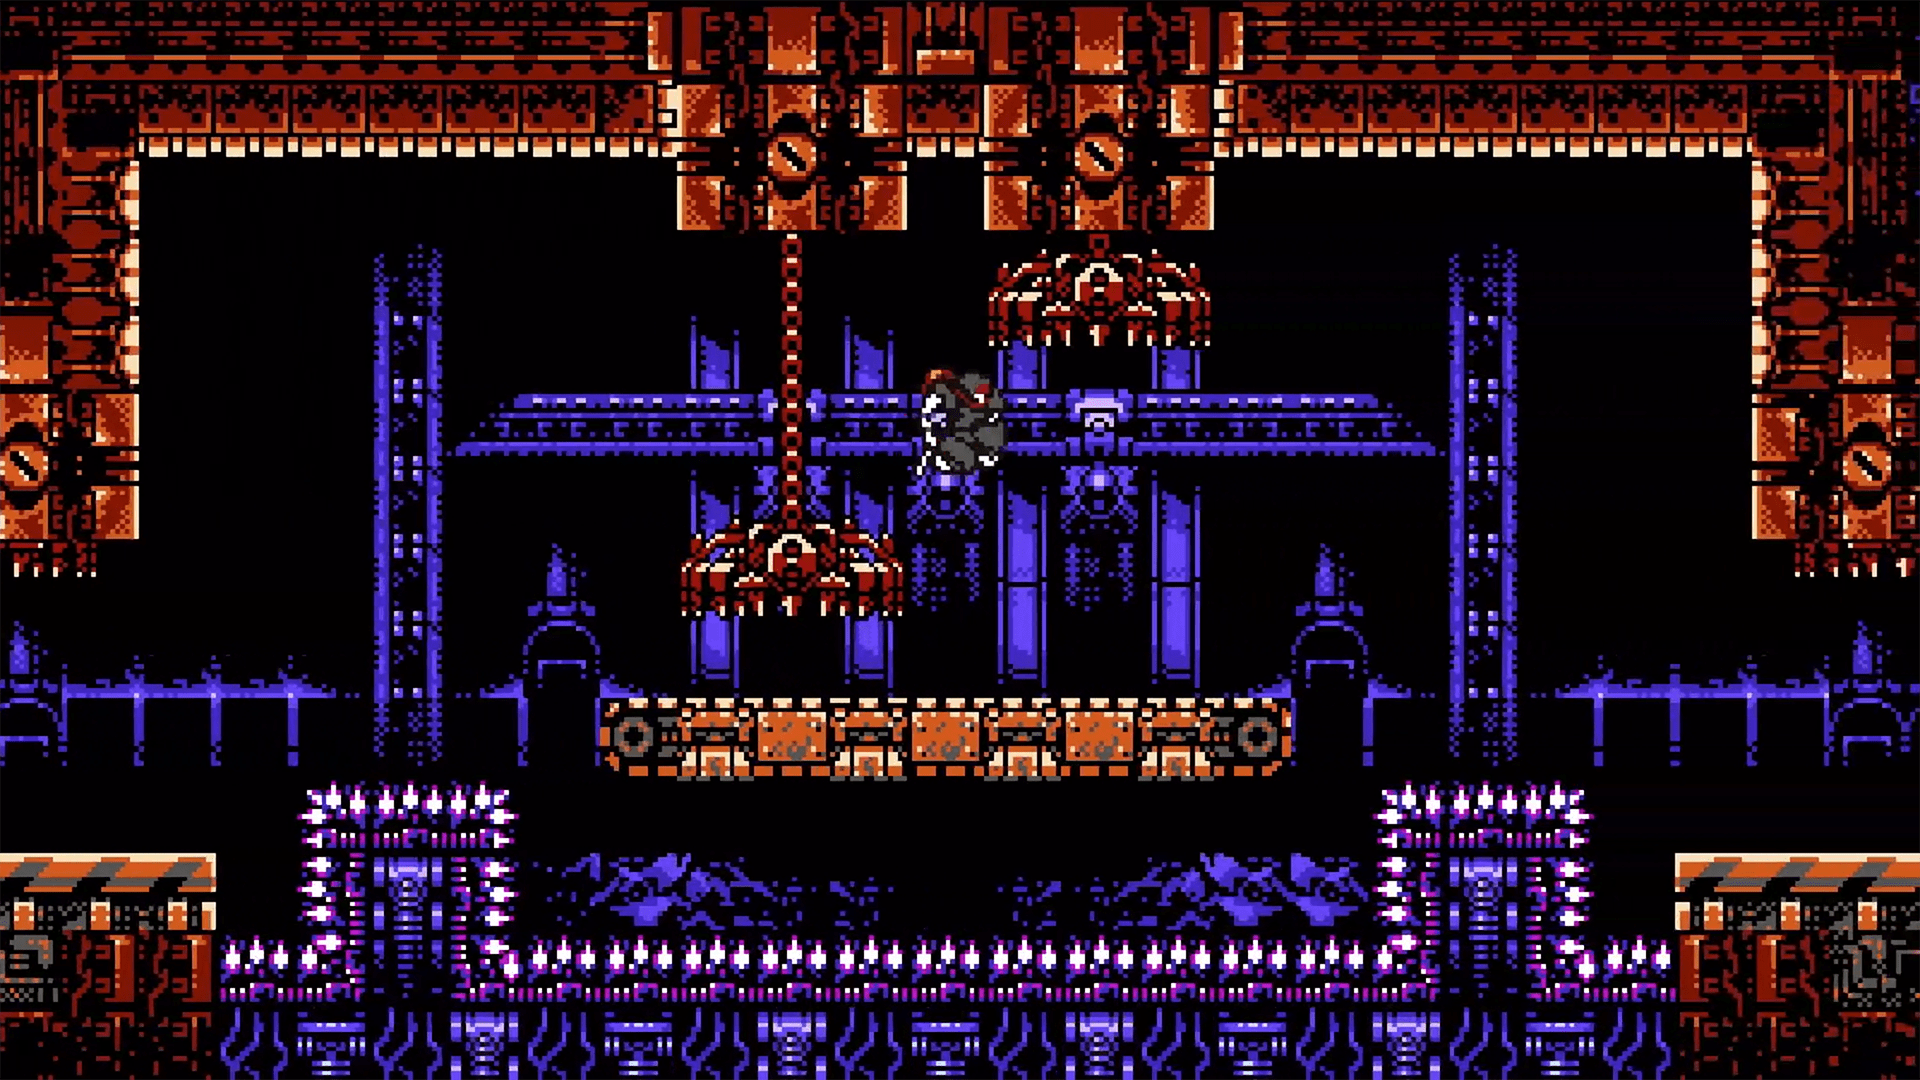 Yacht Club Games Continues Publishing 8-Bit Hero Games, Cyber Shadow Is Their Newest Entry That Echoes Shovel Knight Aesthetics